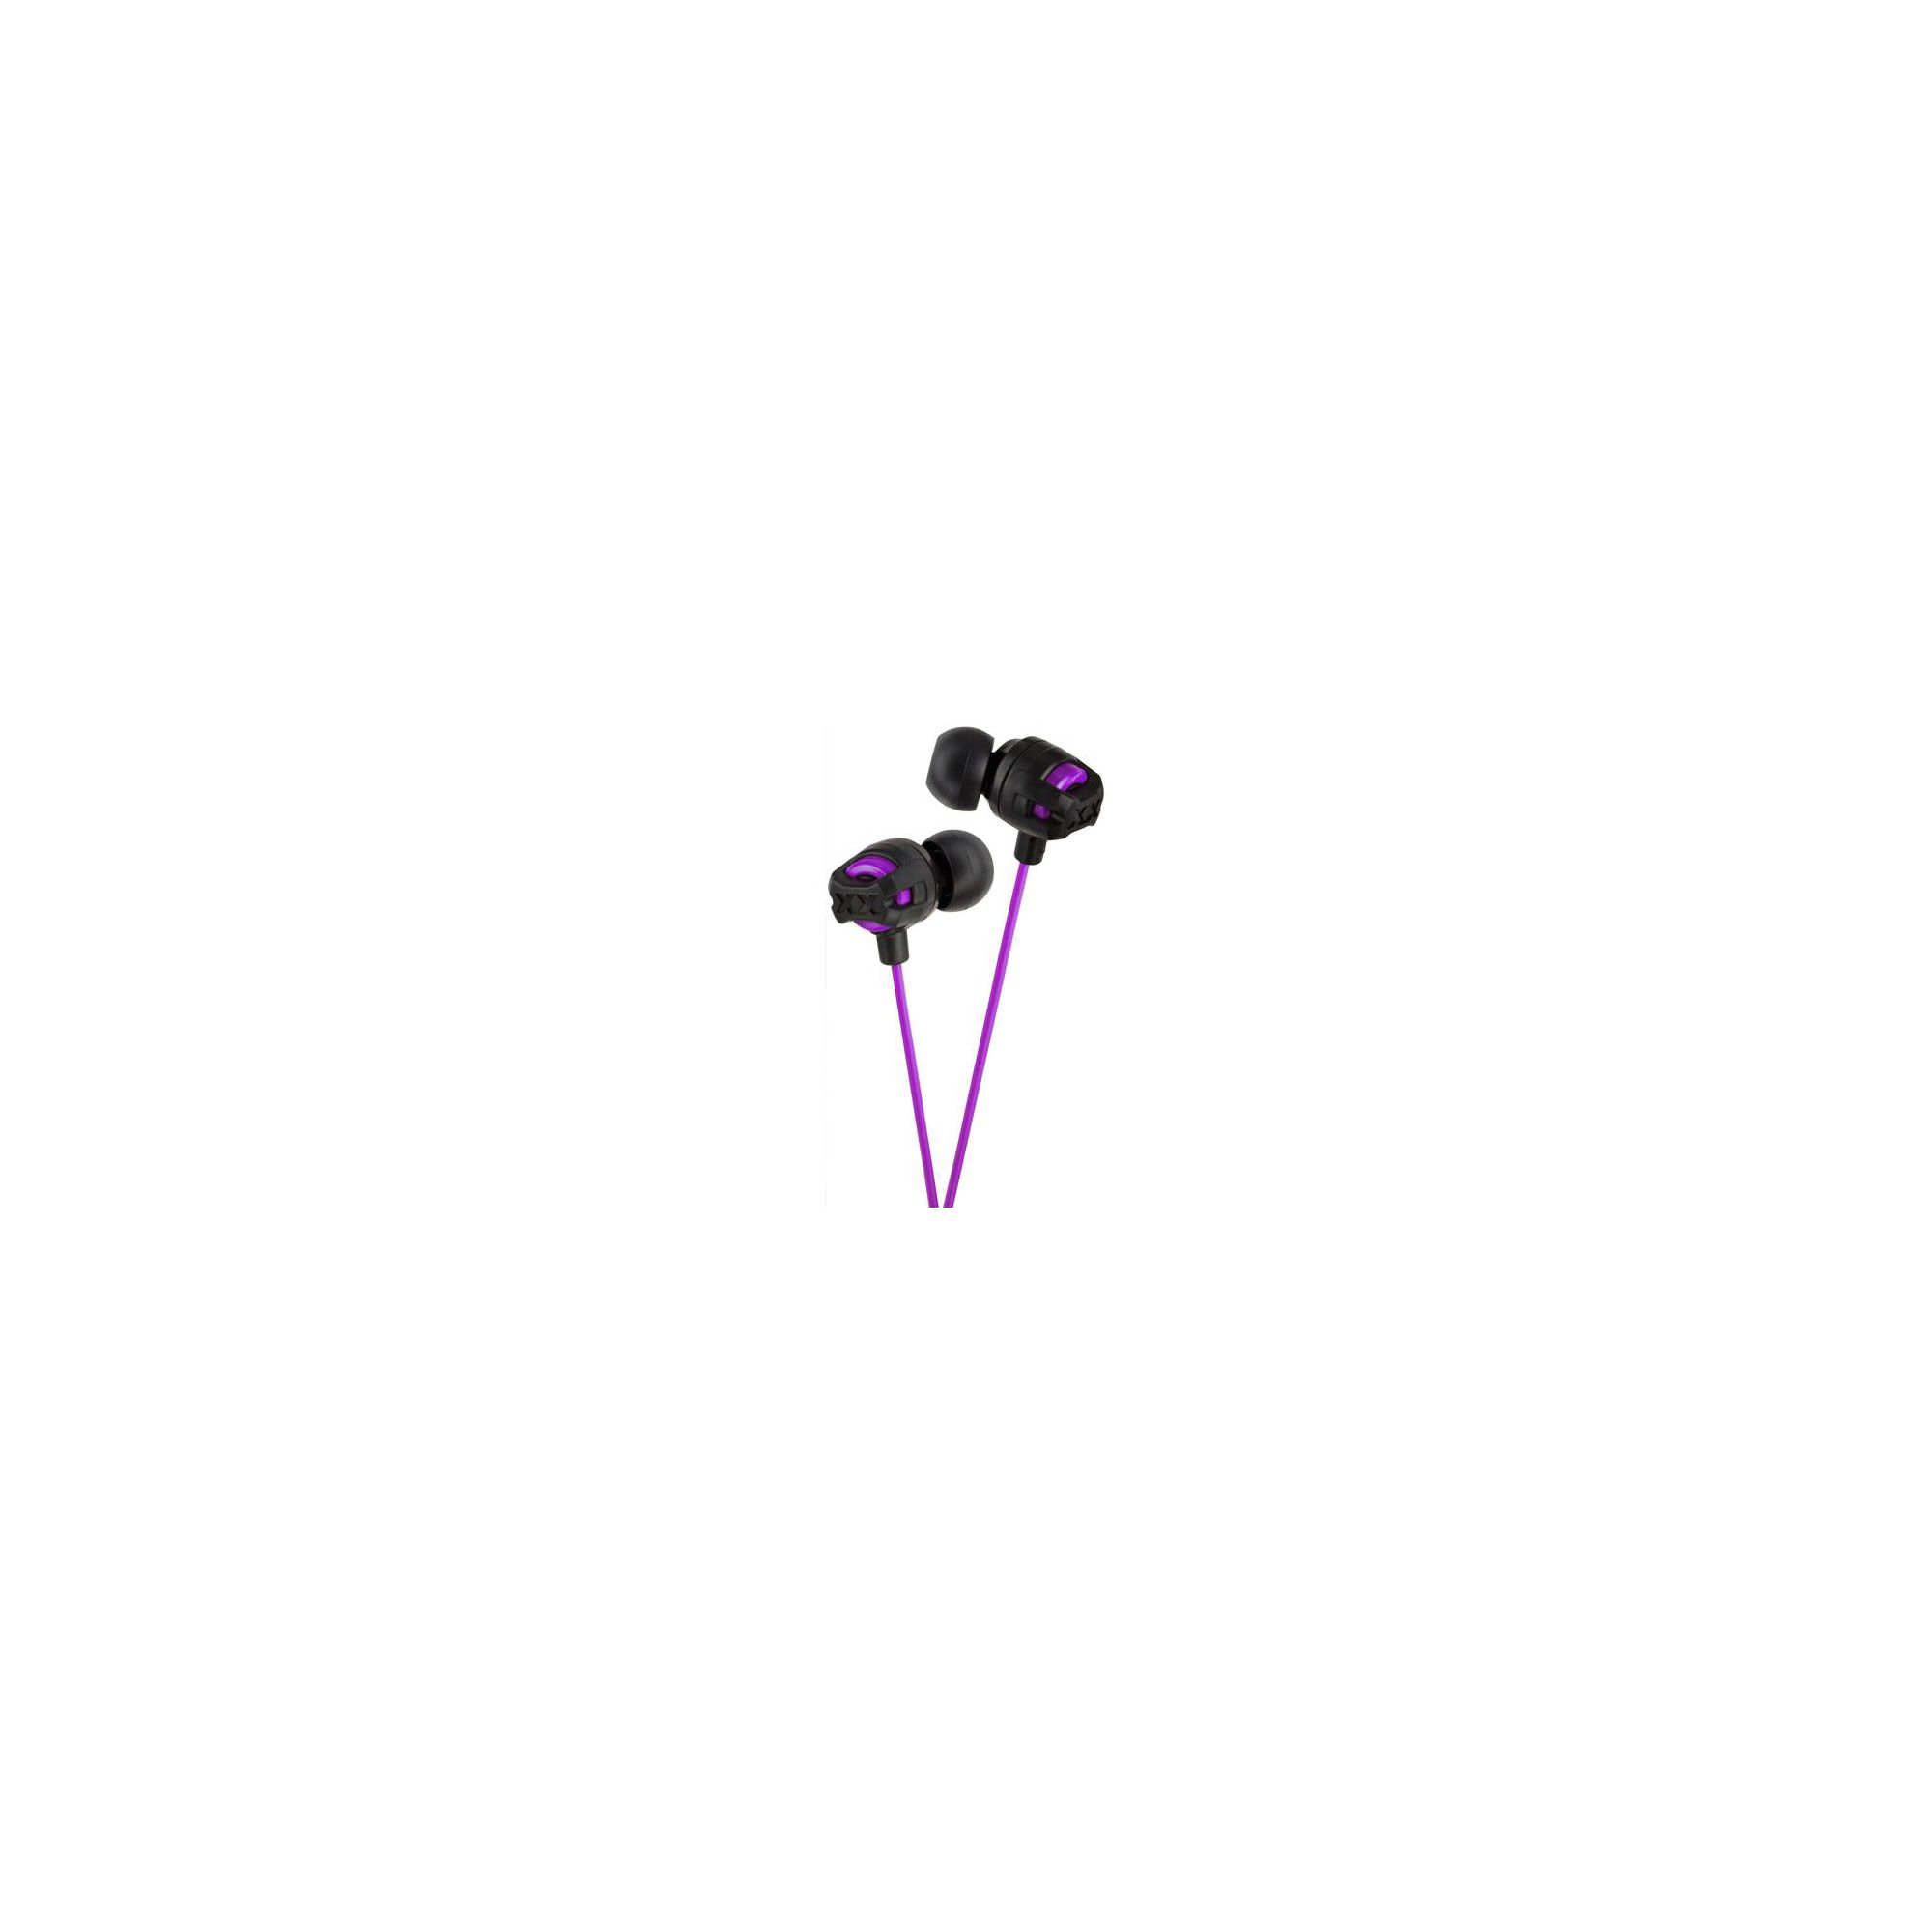 Offerta: JVC Xtreme Xplosives In-Ear Canal Headphones Violet HAFX101